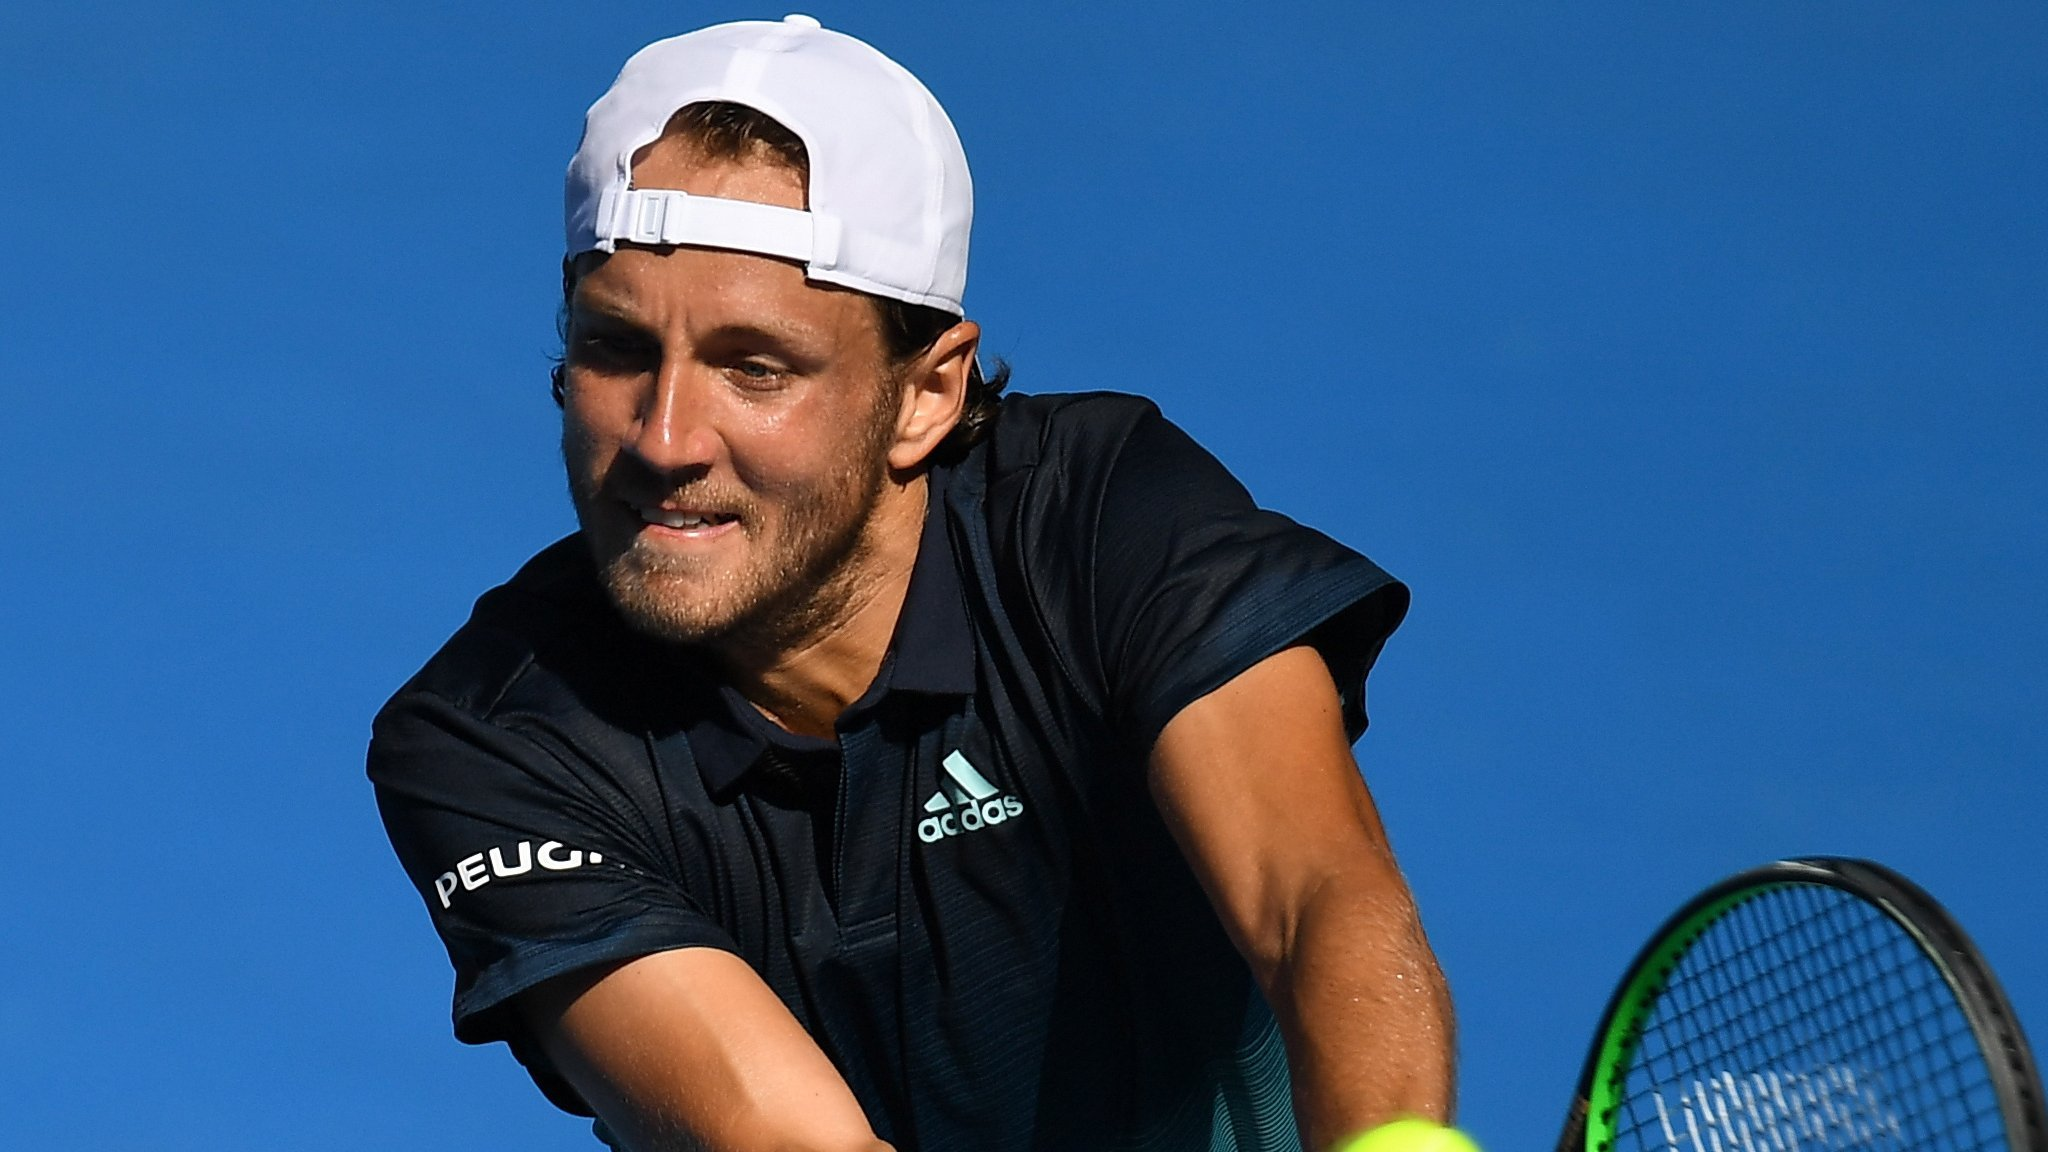 Australian Open 2019: Lucas Pouille beats Milos Raonic to reach semi-final